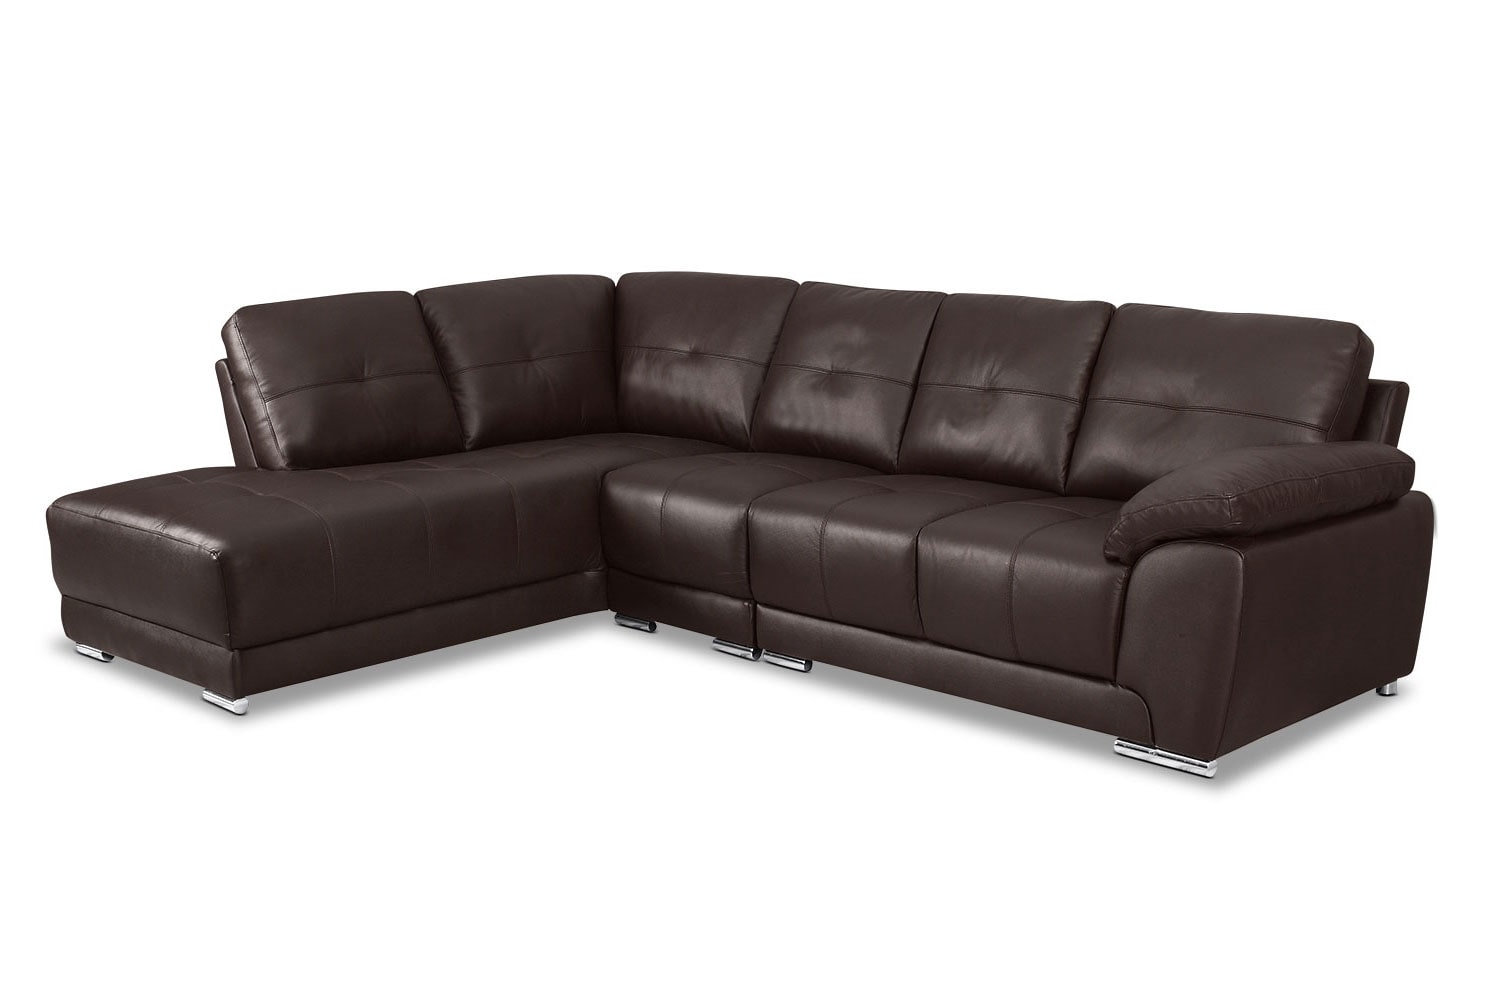 Rothwell 3 piece left facing chaise sectional brown for 3 piece sectional with chaise